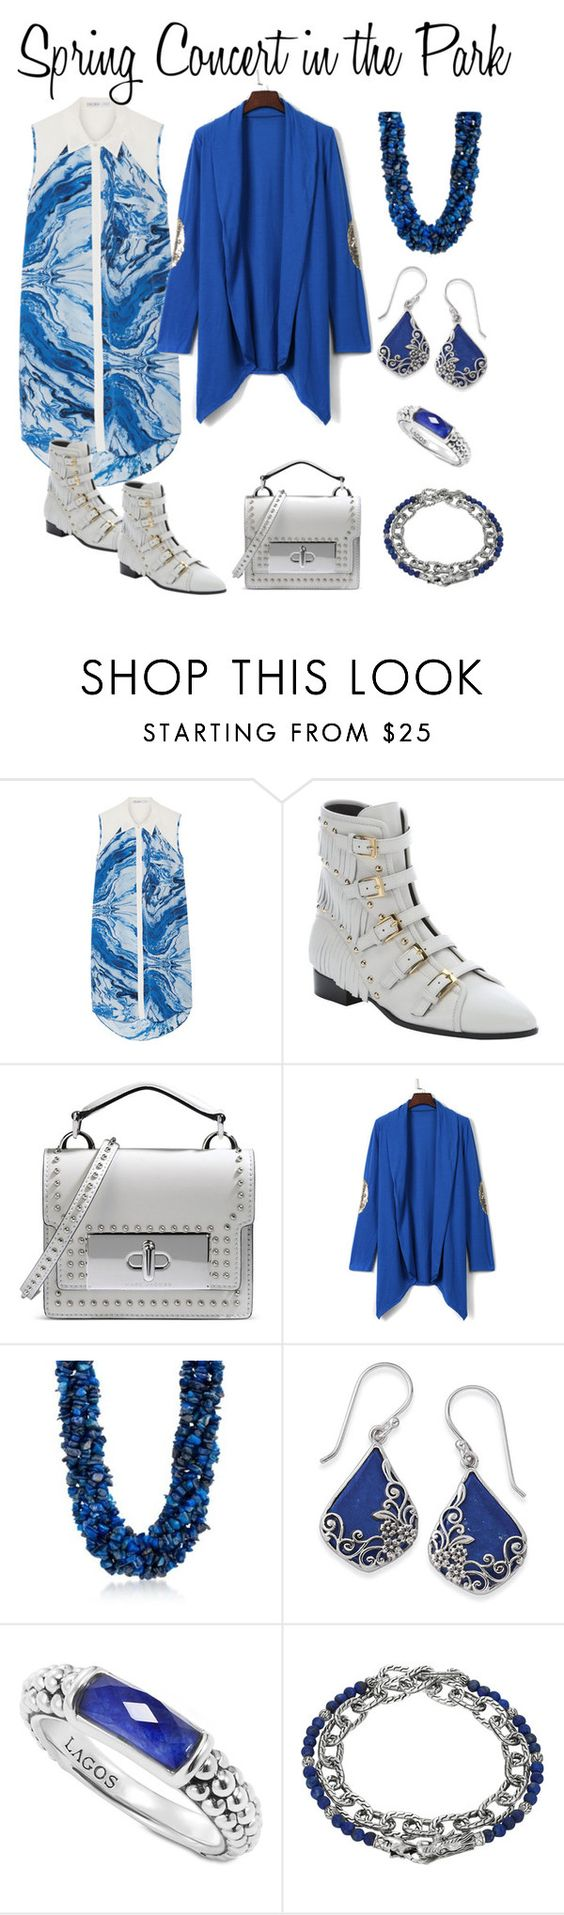 """""""Spring Concert in the Park"""" by karen-galves on Polyvore featuring Chelsea Flower, Giuseppe Zanotti, Marc Jacobs, WithChic, Ross-Simons, Natures Jewelry, Lagos and John Hardy"""